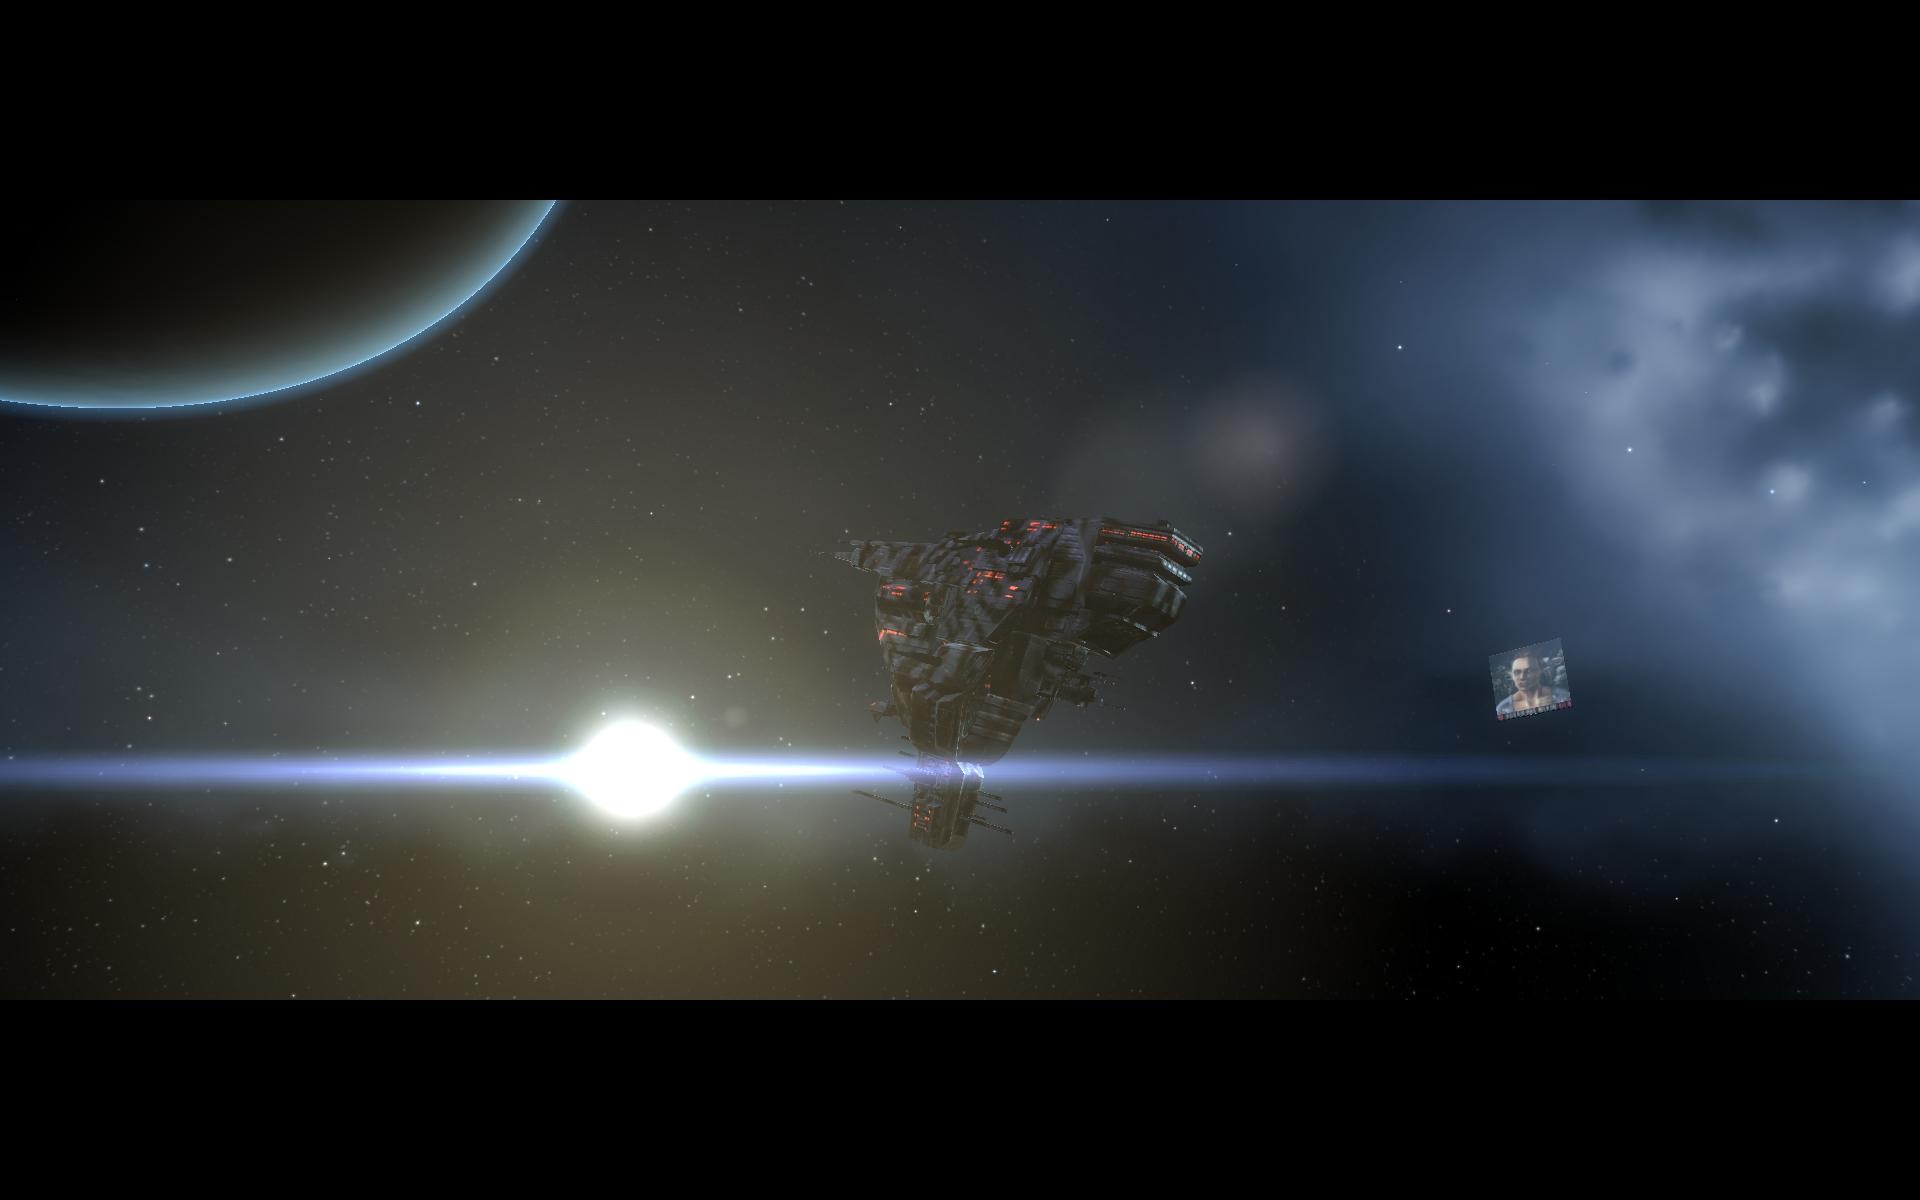 EVE Online - Widescreen Mode